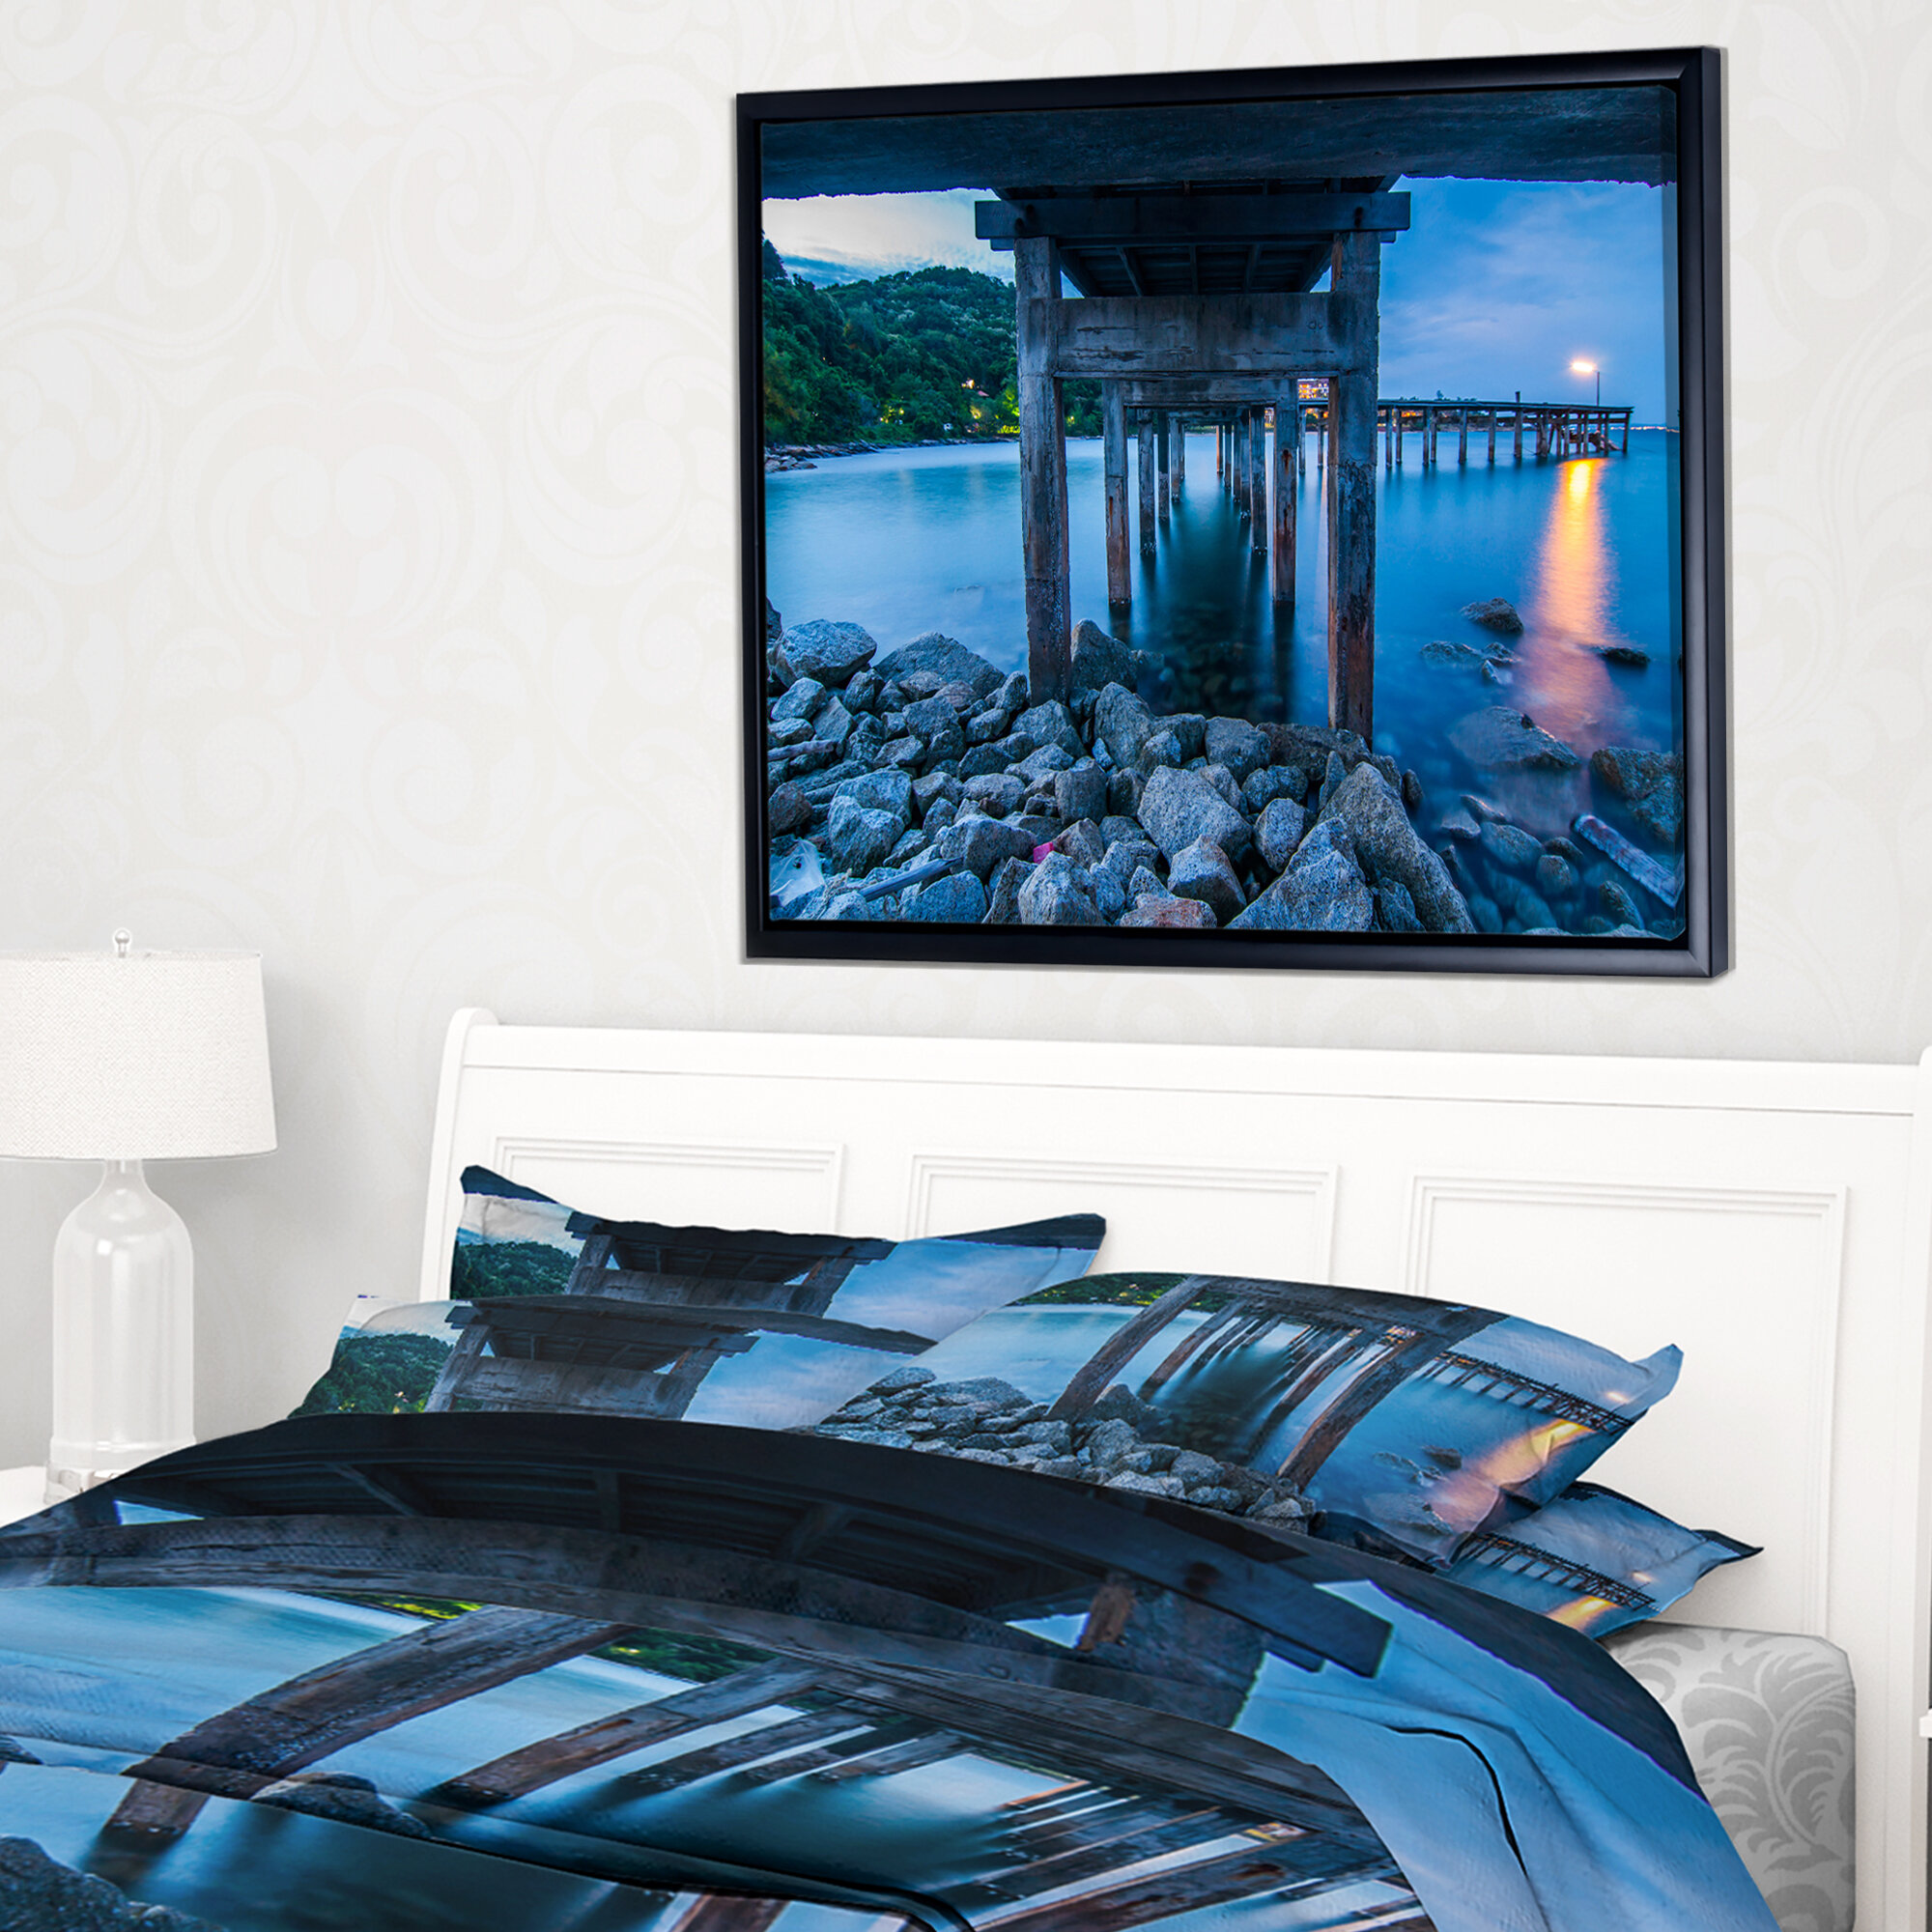 East Urban Home Under Wood Bridge At Twilight Framed Photographic Print On Wrapped Canvas Wayfair